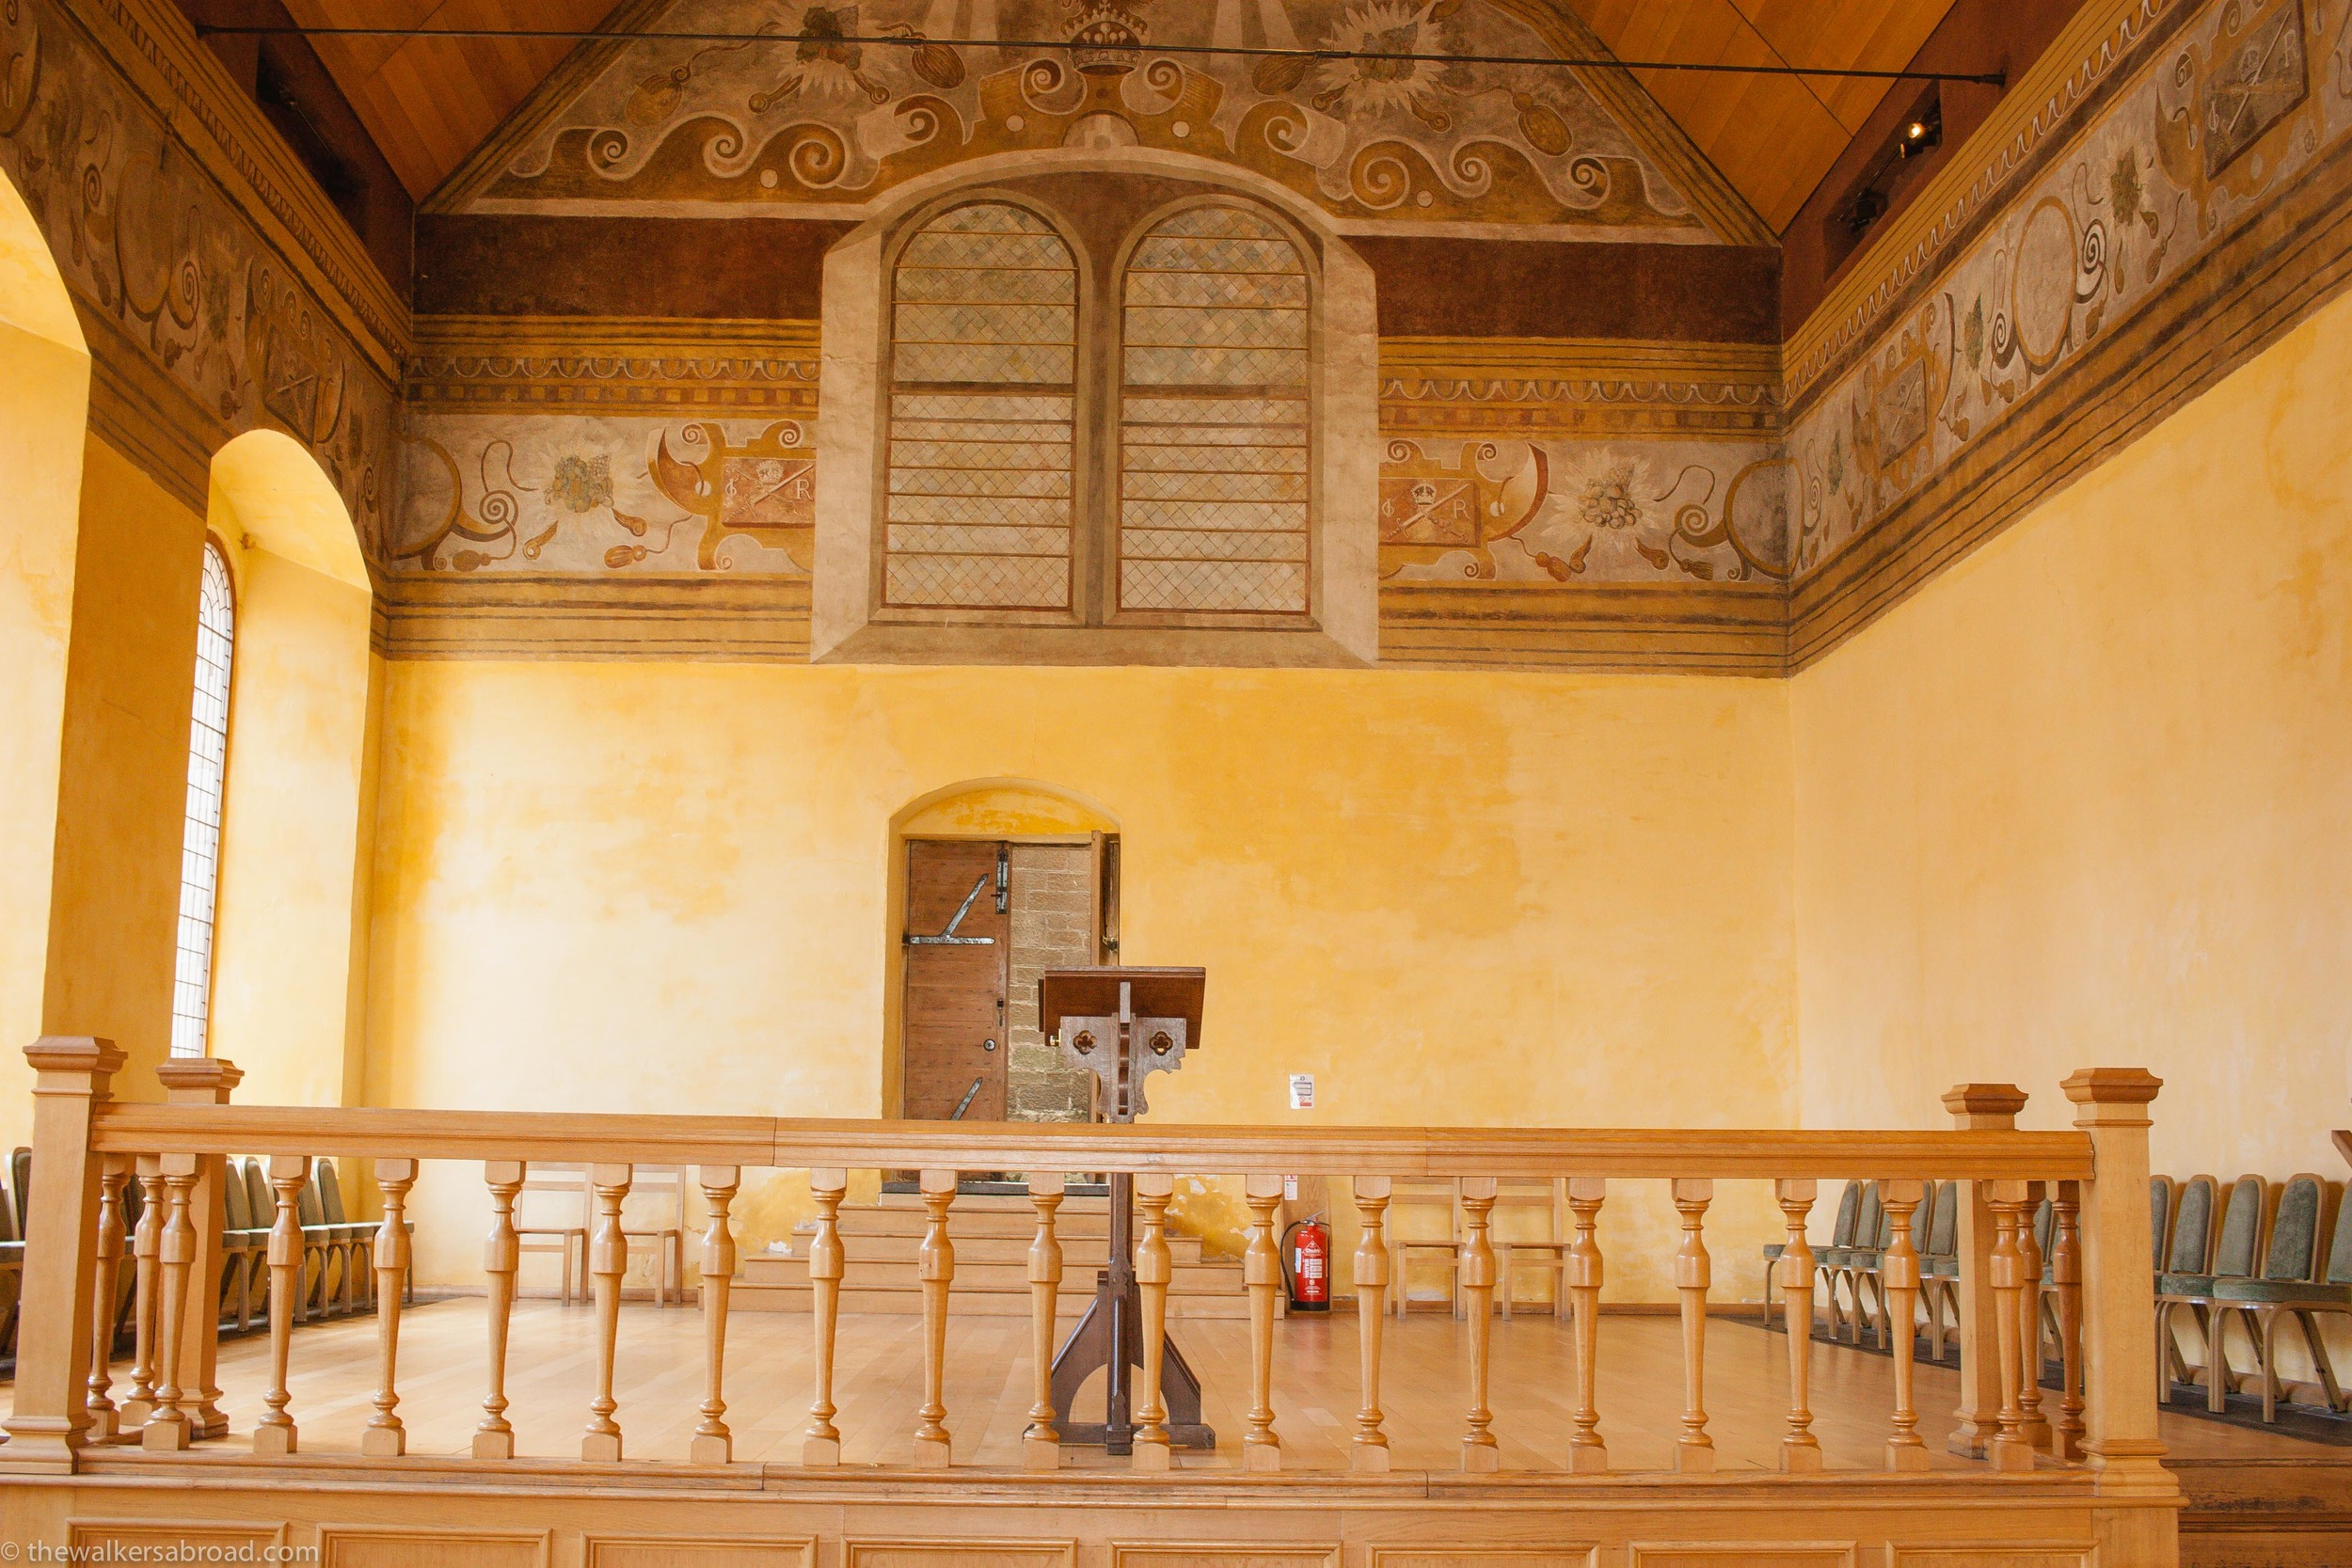 The interior paintings were completed by Valentine Jenkin in 1633 and were rediscovered in the 1930s and further restoration was completed post WW2.